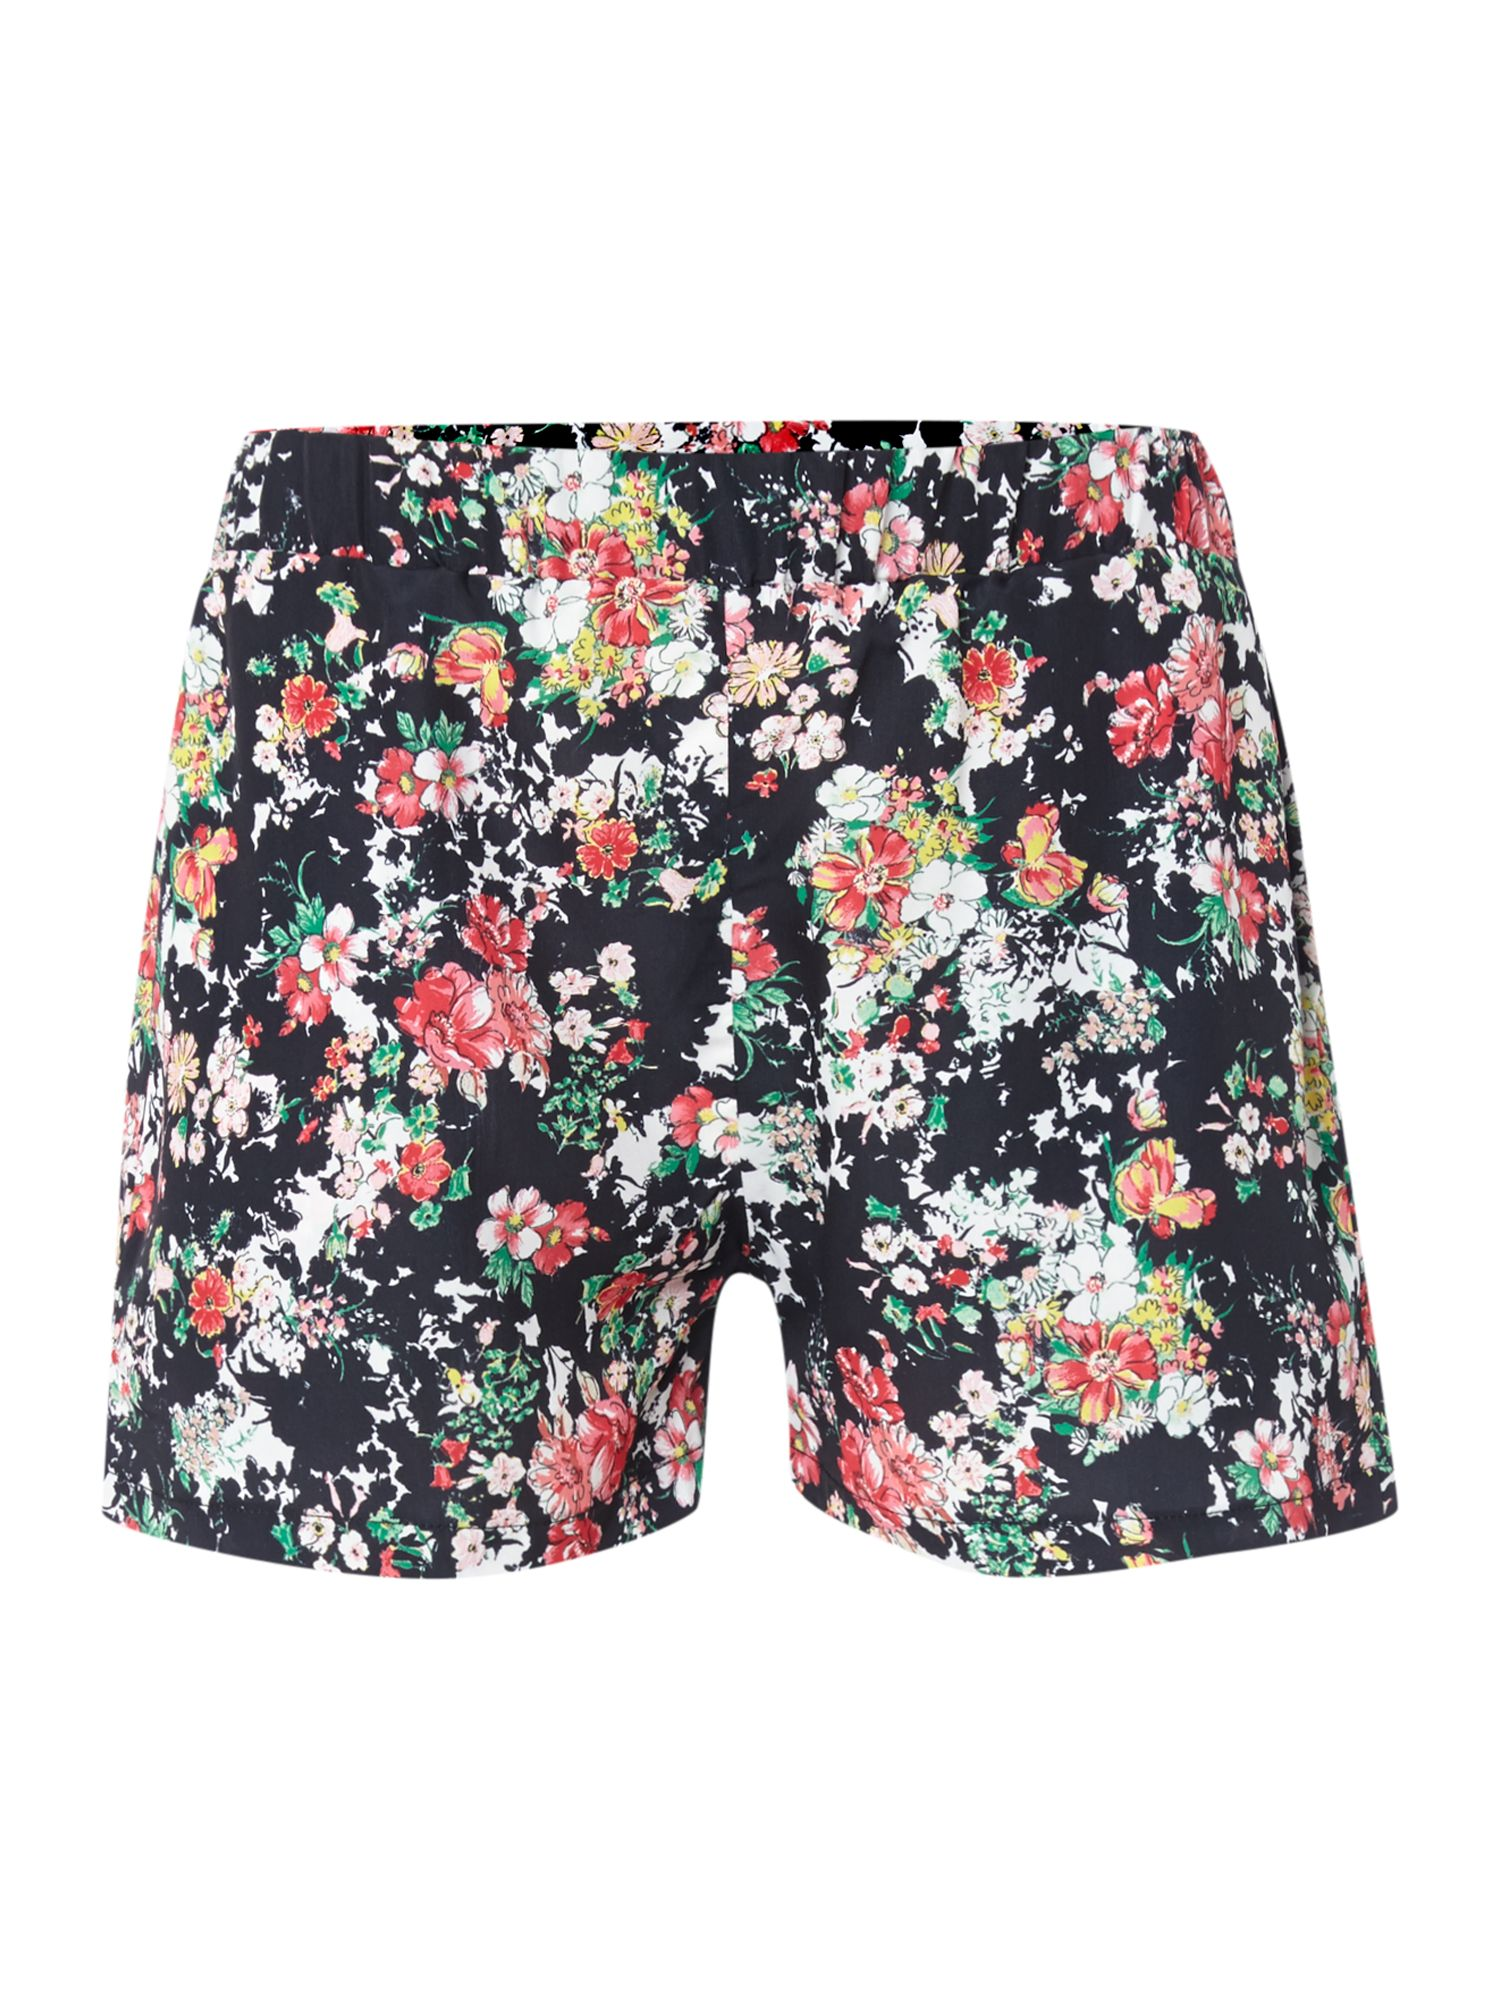 Mixed floral shorts